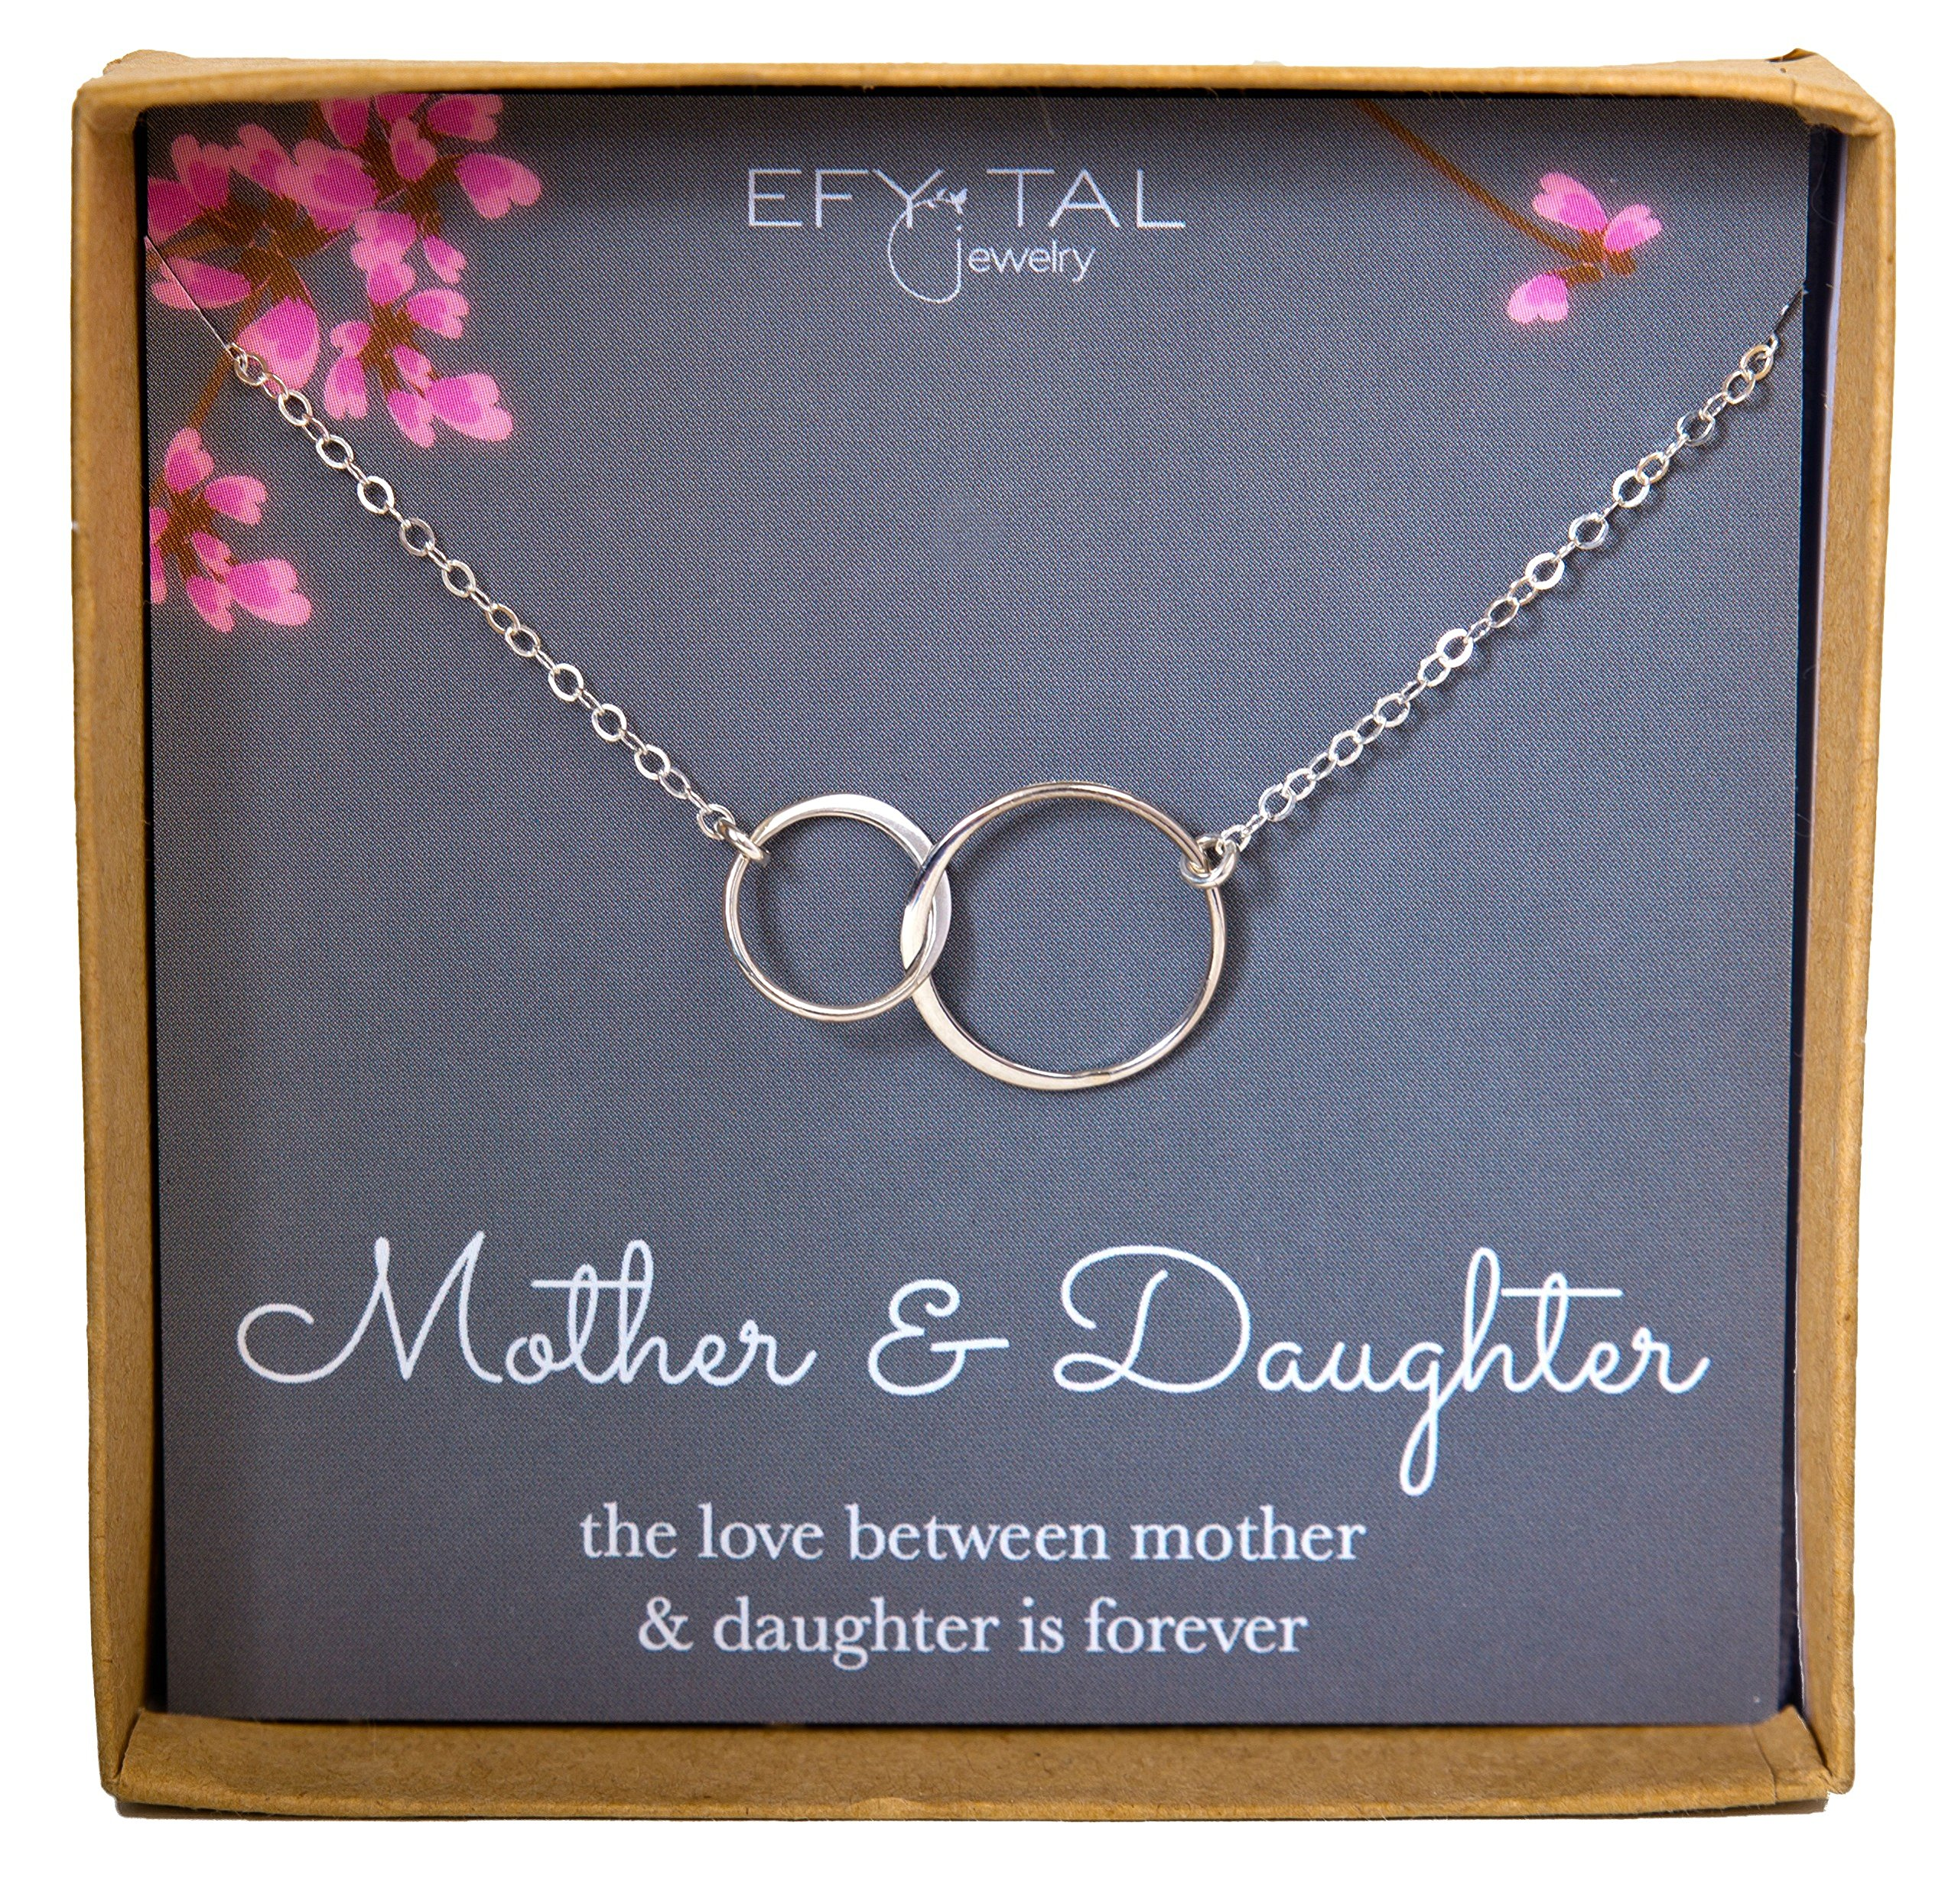 circlet silver friends az mother friend daughter necklace jtn appl infinity bling day jewelry pendant mothers gifts forever